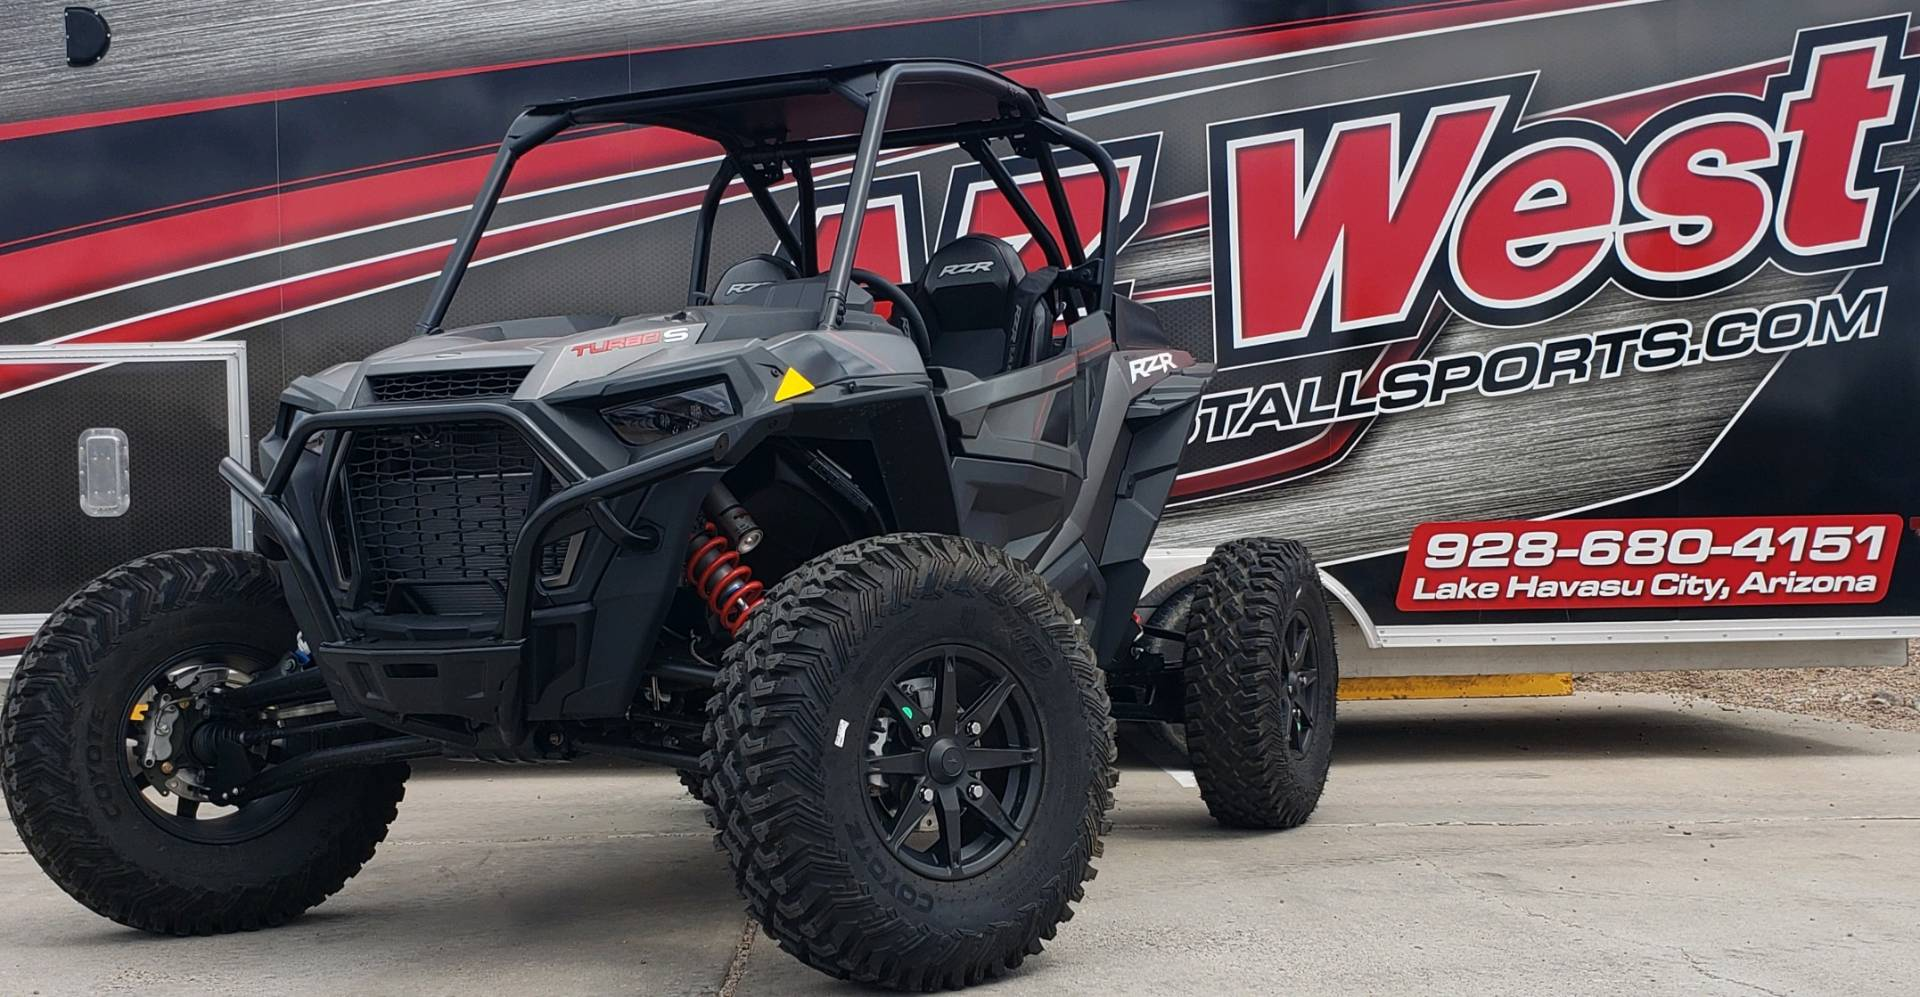 2019 Polaris RZR XP Turbo S Velocity in Lake Havasu City, Arizona - Photo 1